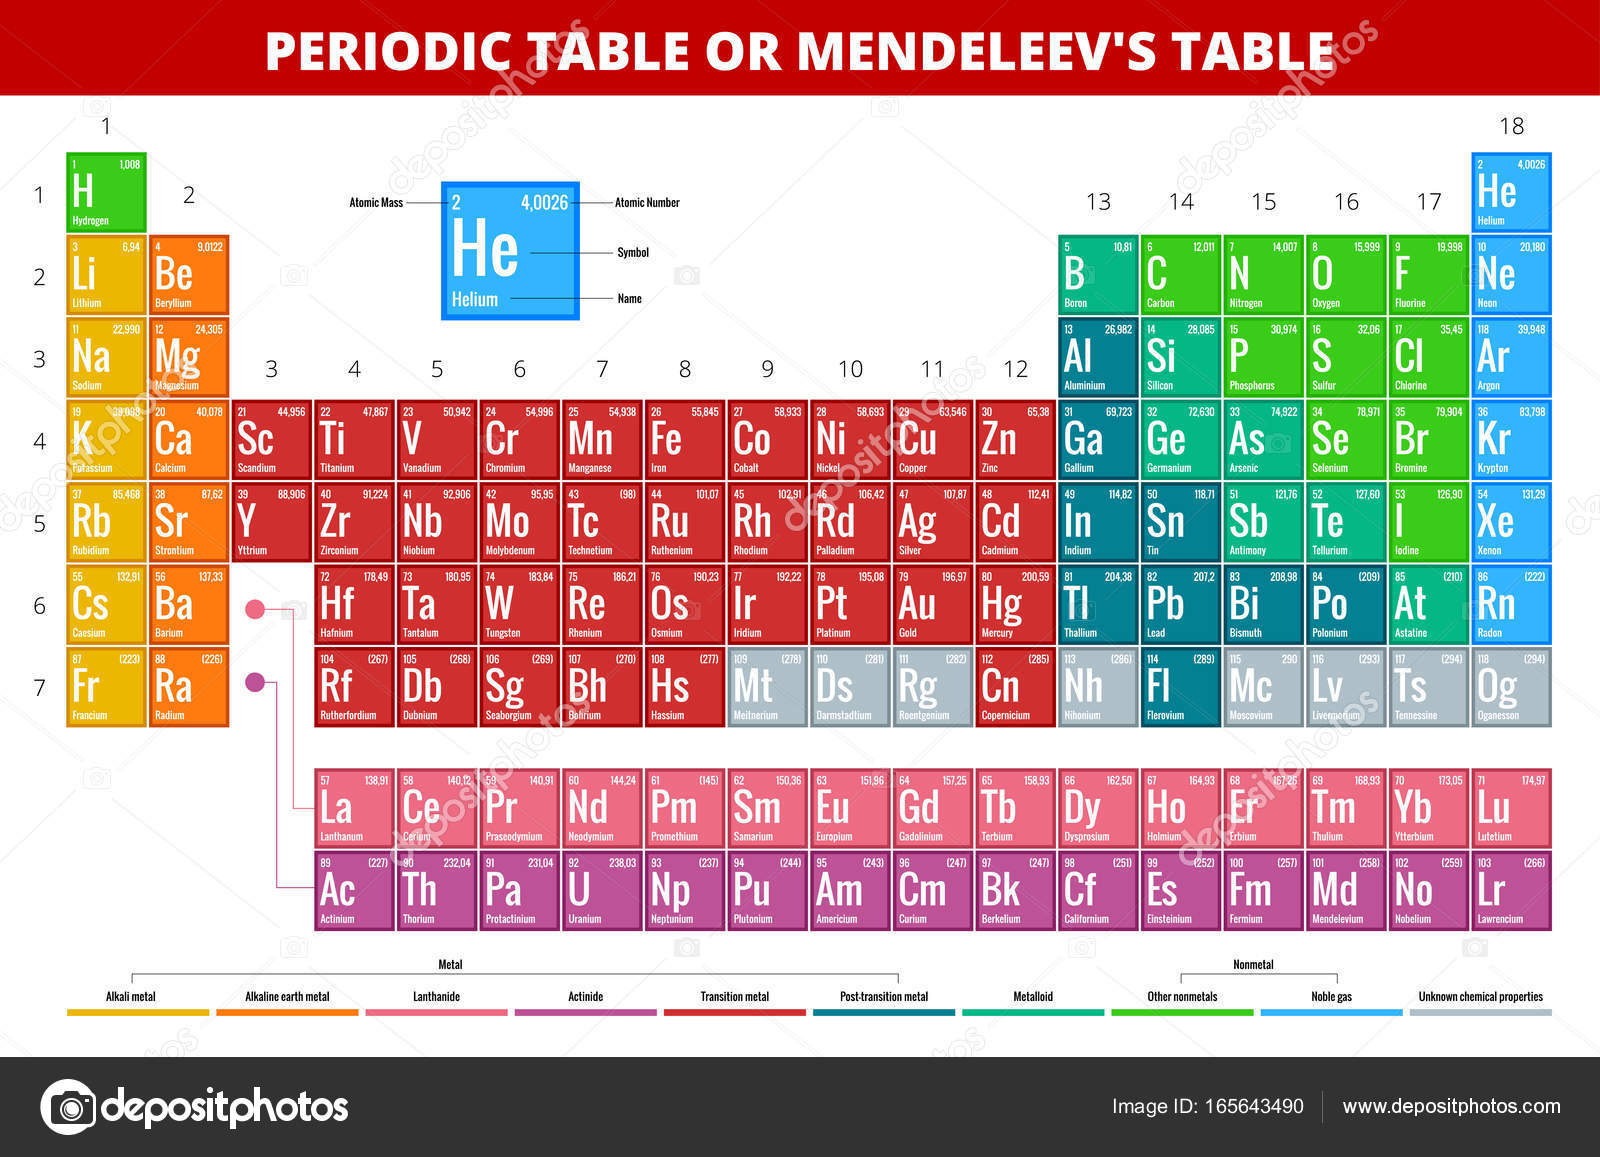 Mendeleevs periodic table of elements vector illustration stock mendeleevs periodic table of elements vector illustration stock vector 165643490 gamestrikefo Image collections